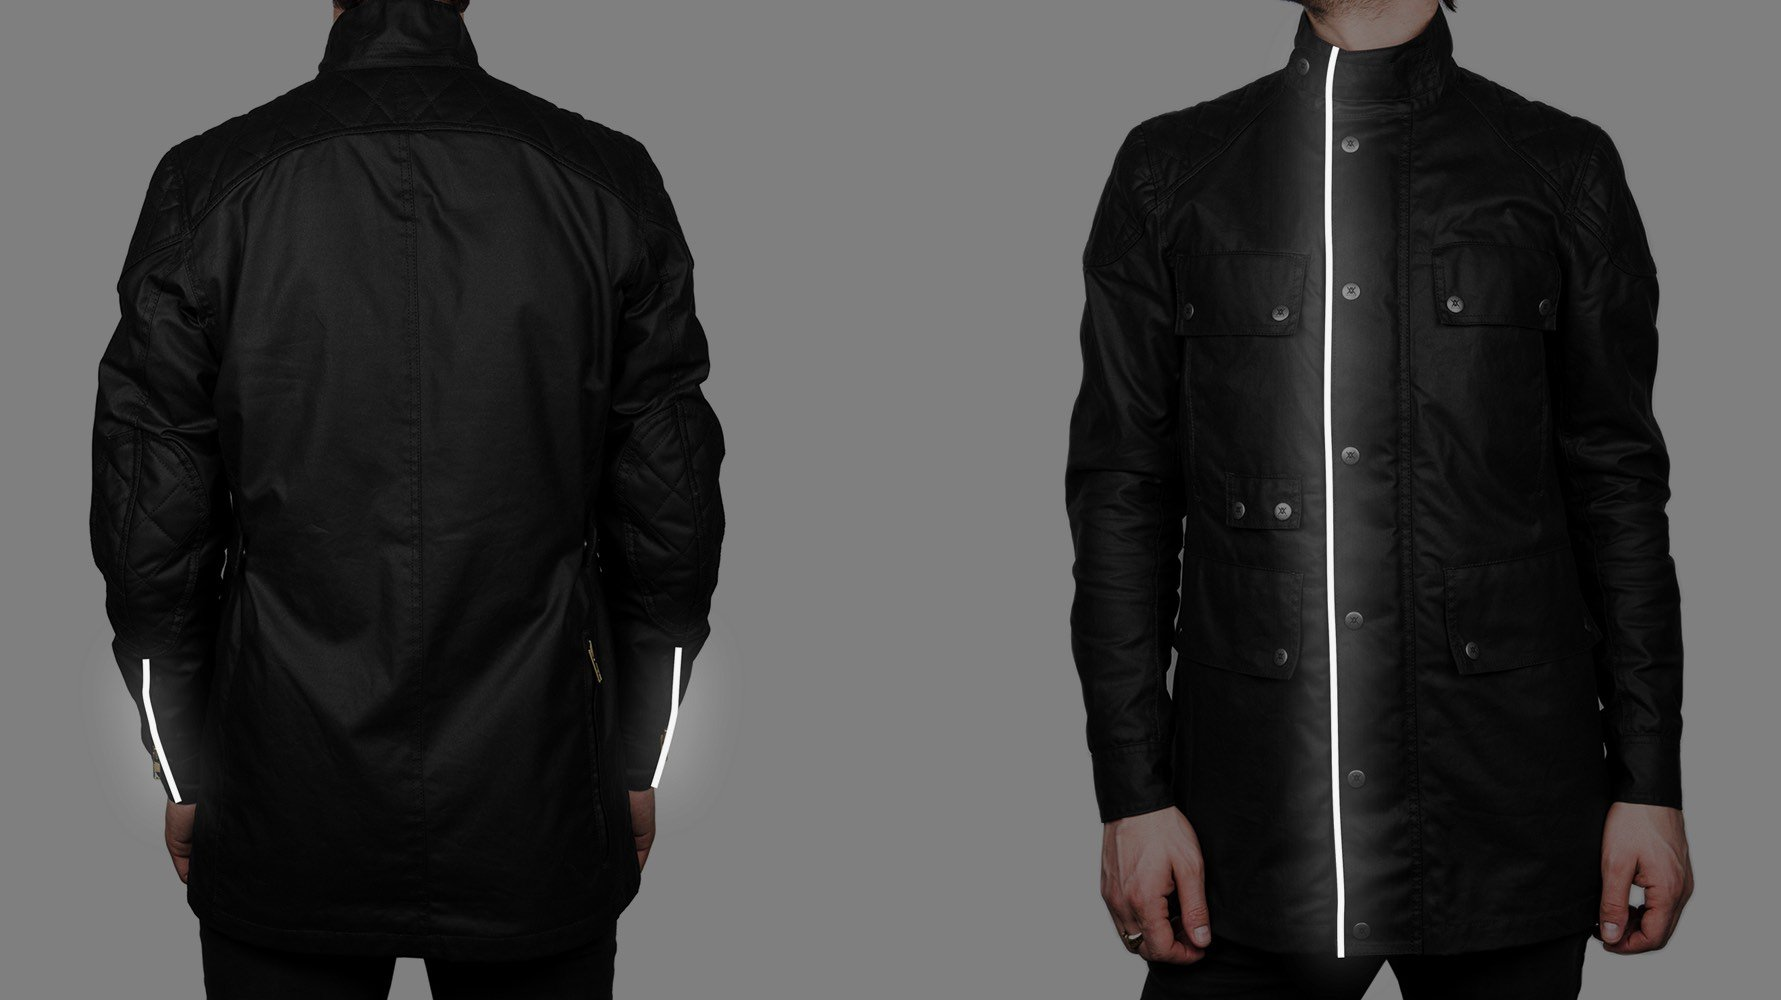 Malle_Expedition_Jacket_Details_Black3